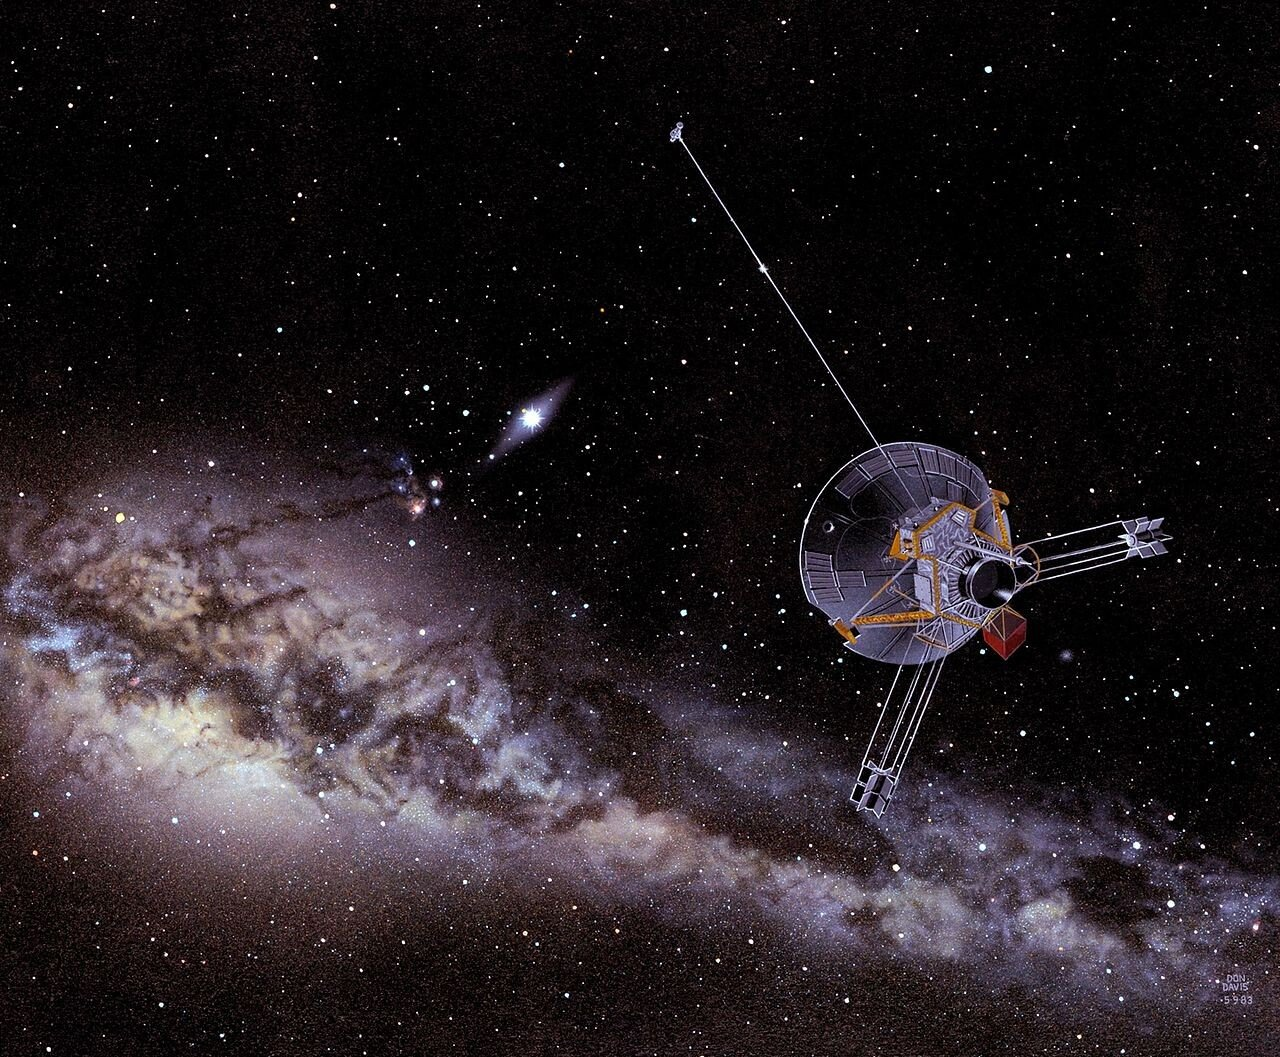 An_artist's_impression_of_a_Pioneer_spacecraft_on_its_way_to_interstellar_space (1).jpg 인류 우주탐사의 역사(1974~현재)